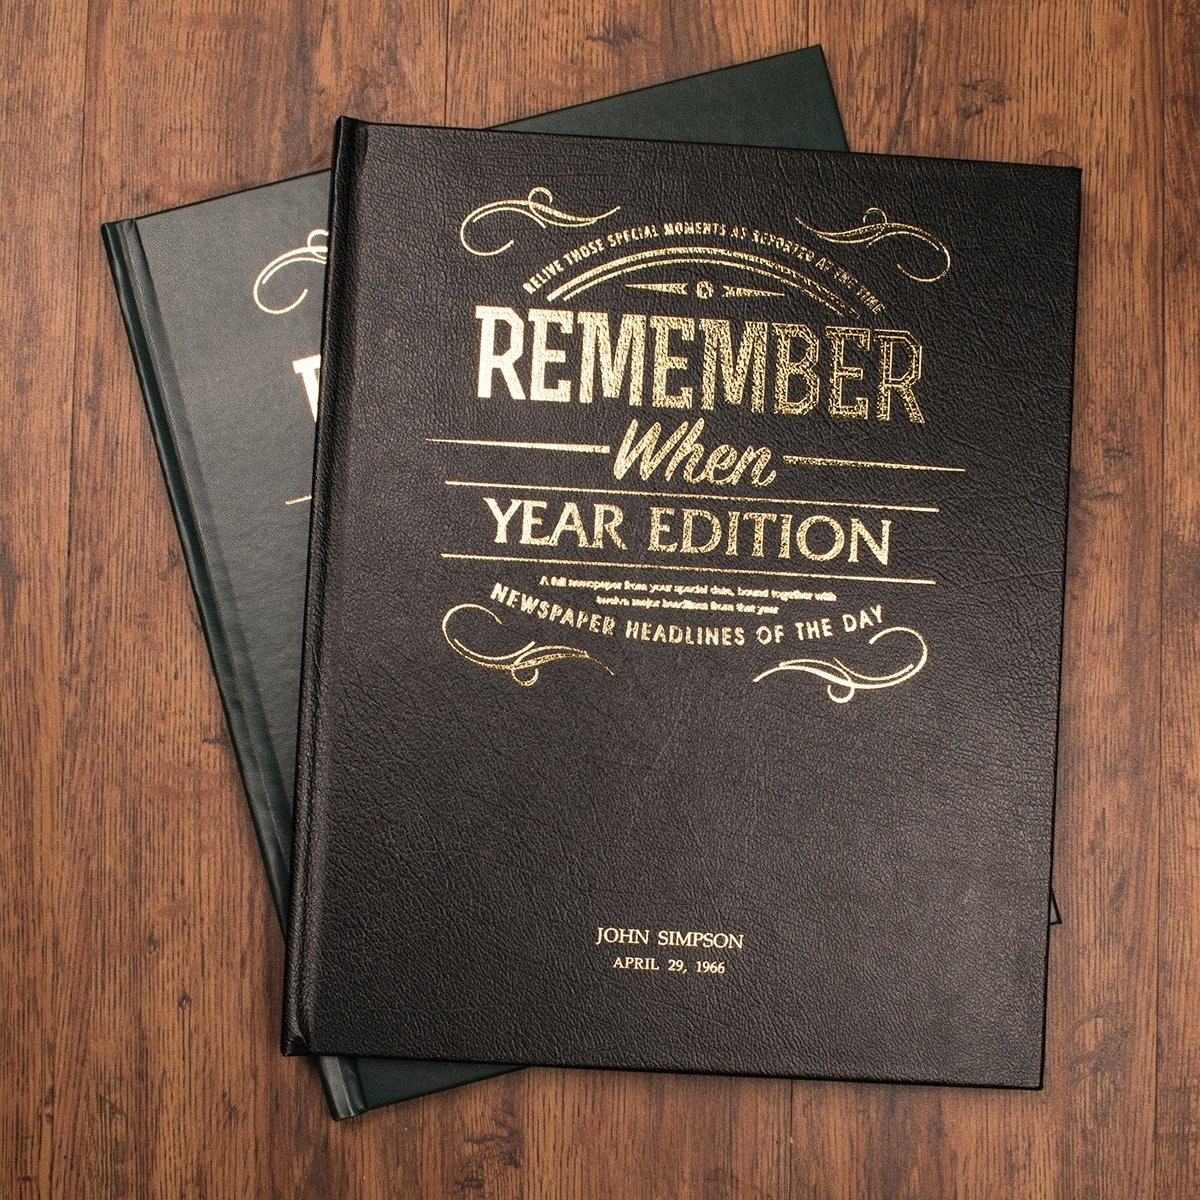 10 Stunning 60Th Birthday Gift Ideas For Men personalised 60th birthday newspaper year book gettingpersonal co uk 4 2021